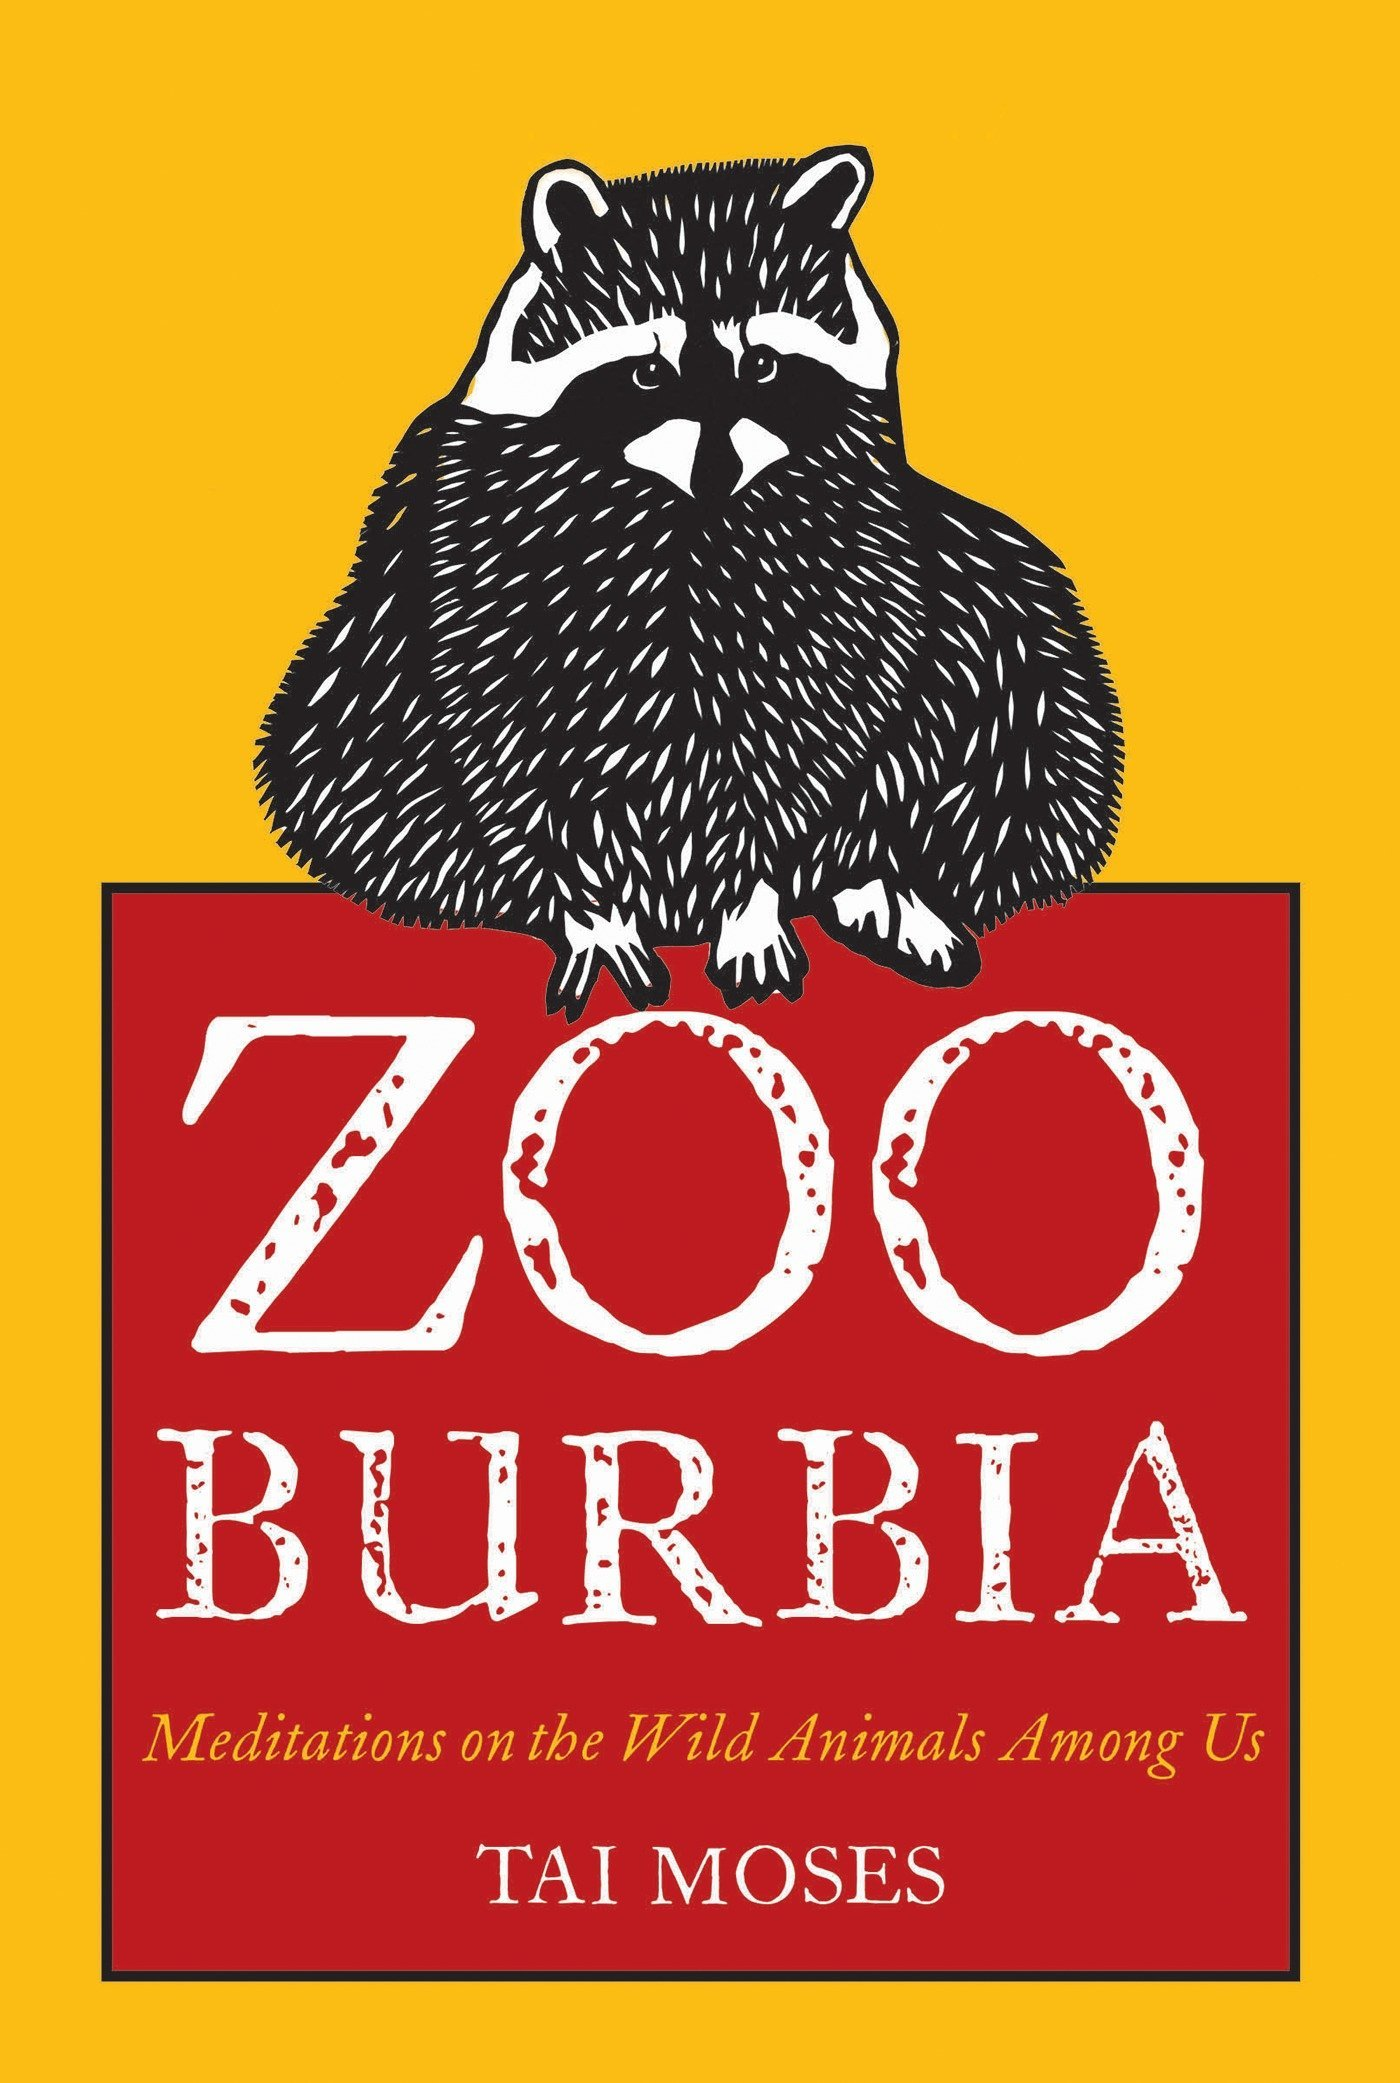 Zooburbia Meditations On The Wild Animals Among Us By Tai Moses